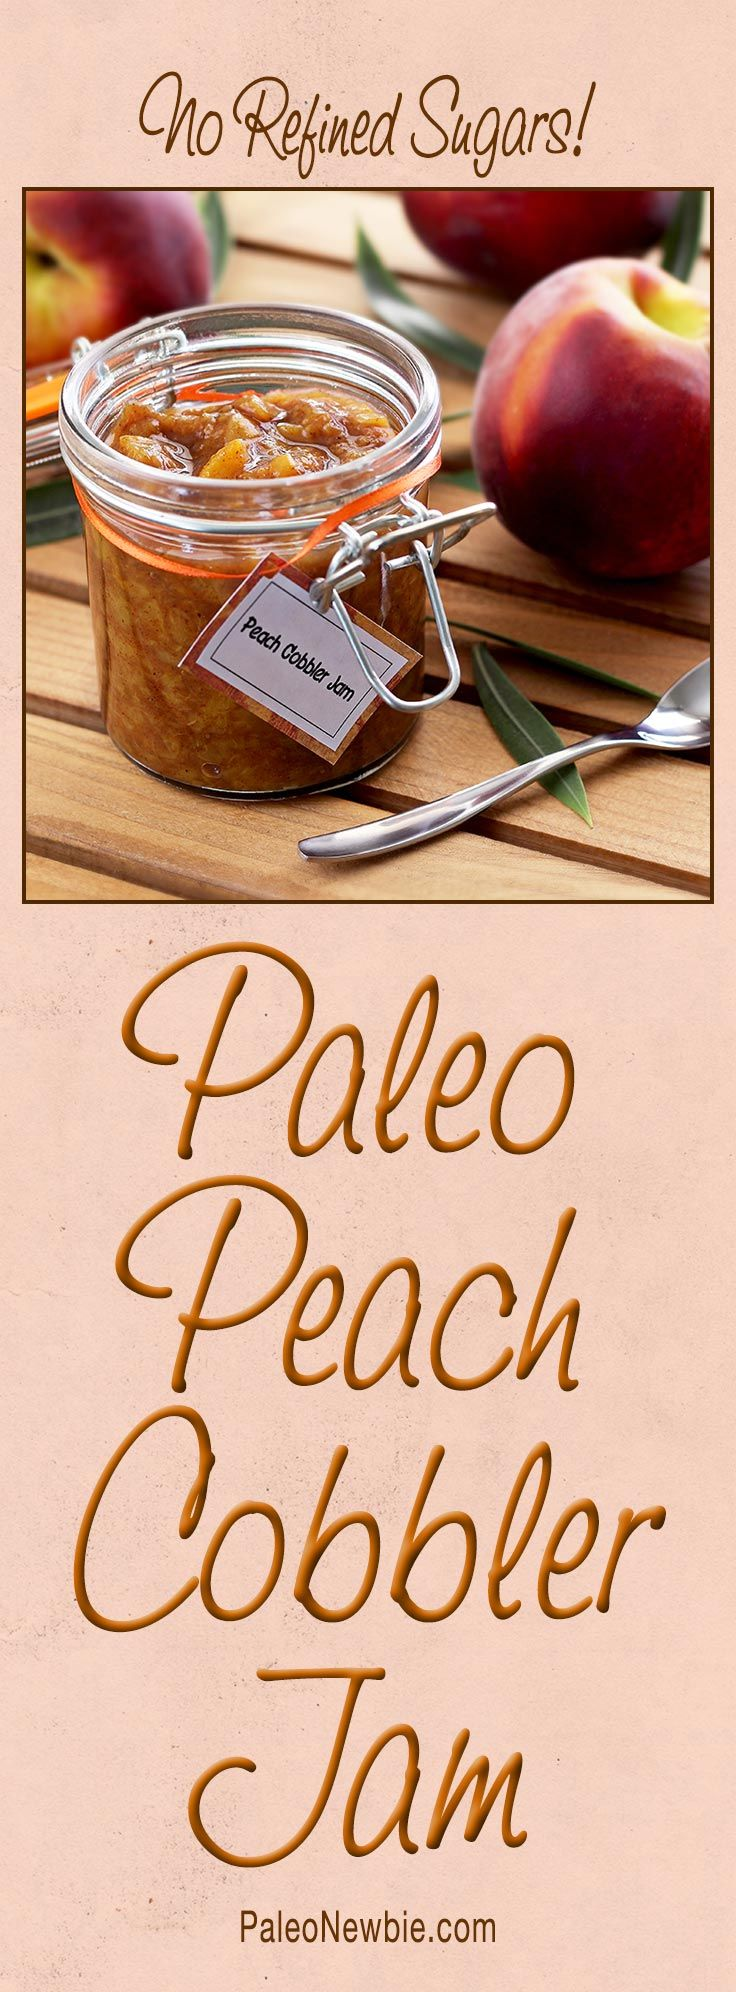 All the flavor of a fresh-baked, hot and bubbly peach cobbler…made into a  chunky fruit jam – without the sugars, flour and butter. Try this easy paleo and gluten-free recipe!  #paleo #glutenfree #jam